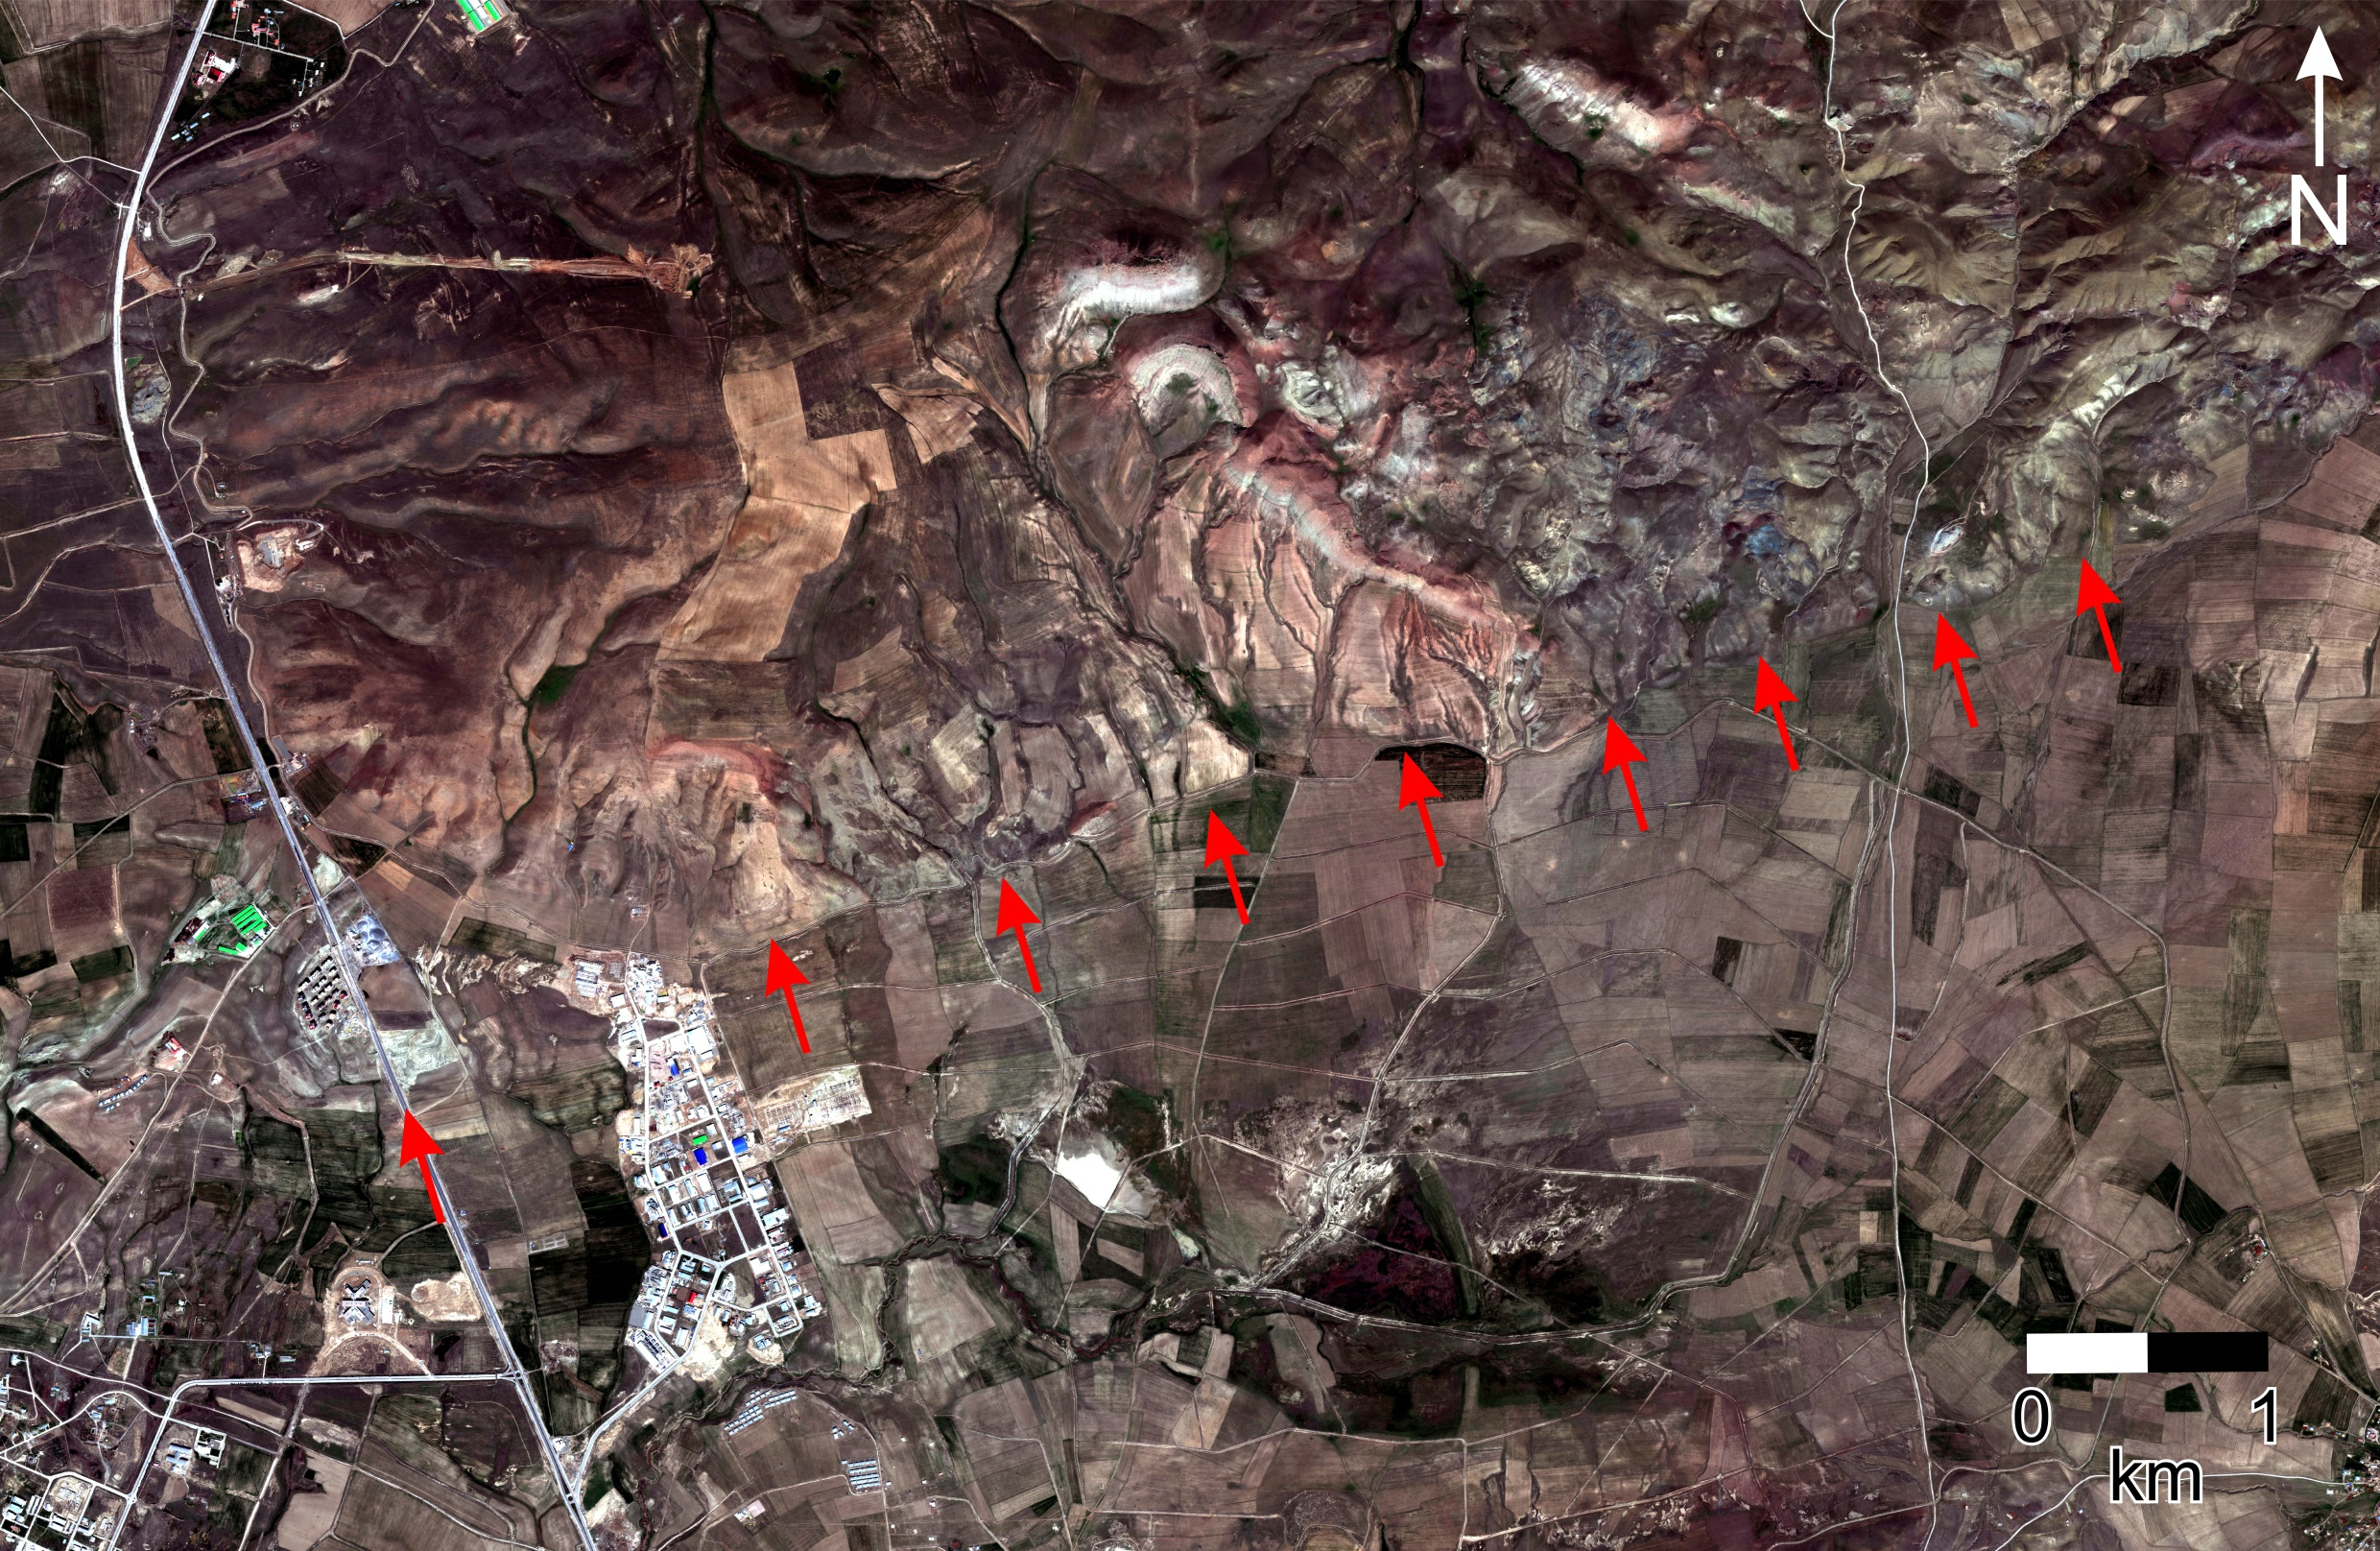 Figure 2: World-View 2 satellite imagery of the western fault segment, 10 km north of Van. The fault trace runs almost east-west (red arrows – the western most arrow is the location of figure 3). The surface geomorphology of the fault scarp is relatively clear in retrospect as there is a change in river incision moving from the south (flat agricultural fields) to the north across the fault (deeper stream and river valleys). This change in river cutting is due to the uplift of the hillside north of the fault from past earthquakes which push up the mountains. In the 2011 earthquake, the mountains to the north grew higher by almost 1 m.